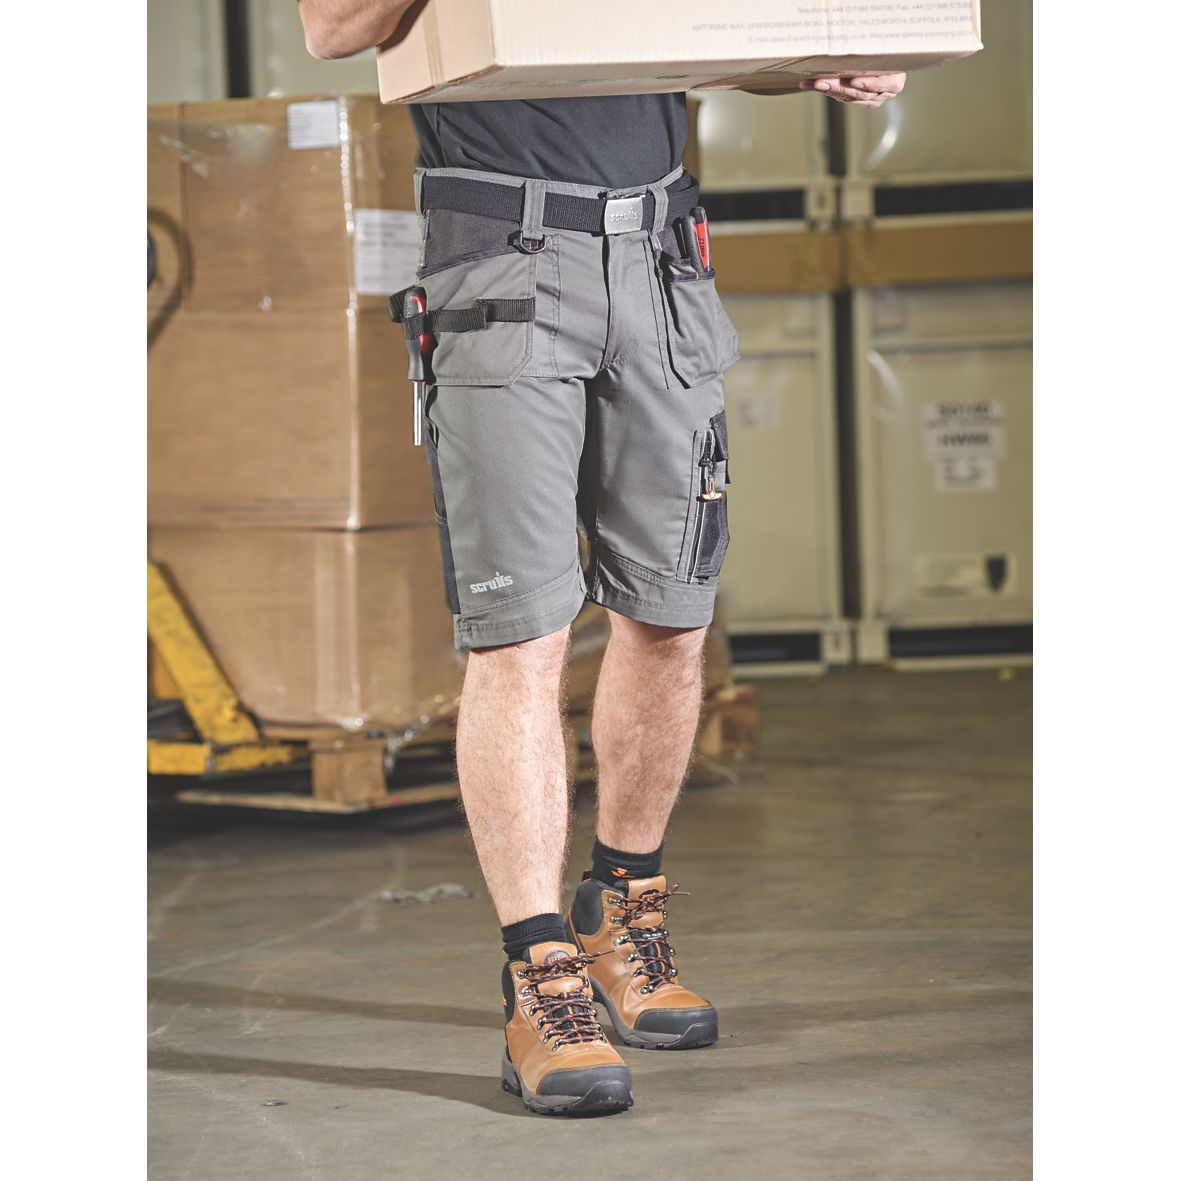 Pin by Screwfix on Beat The Heat Work shorts, Work wear